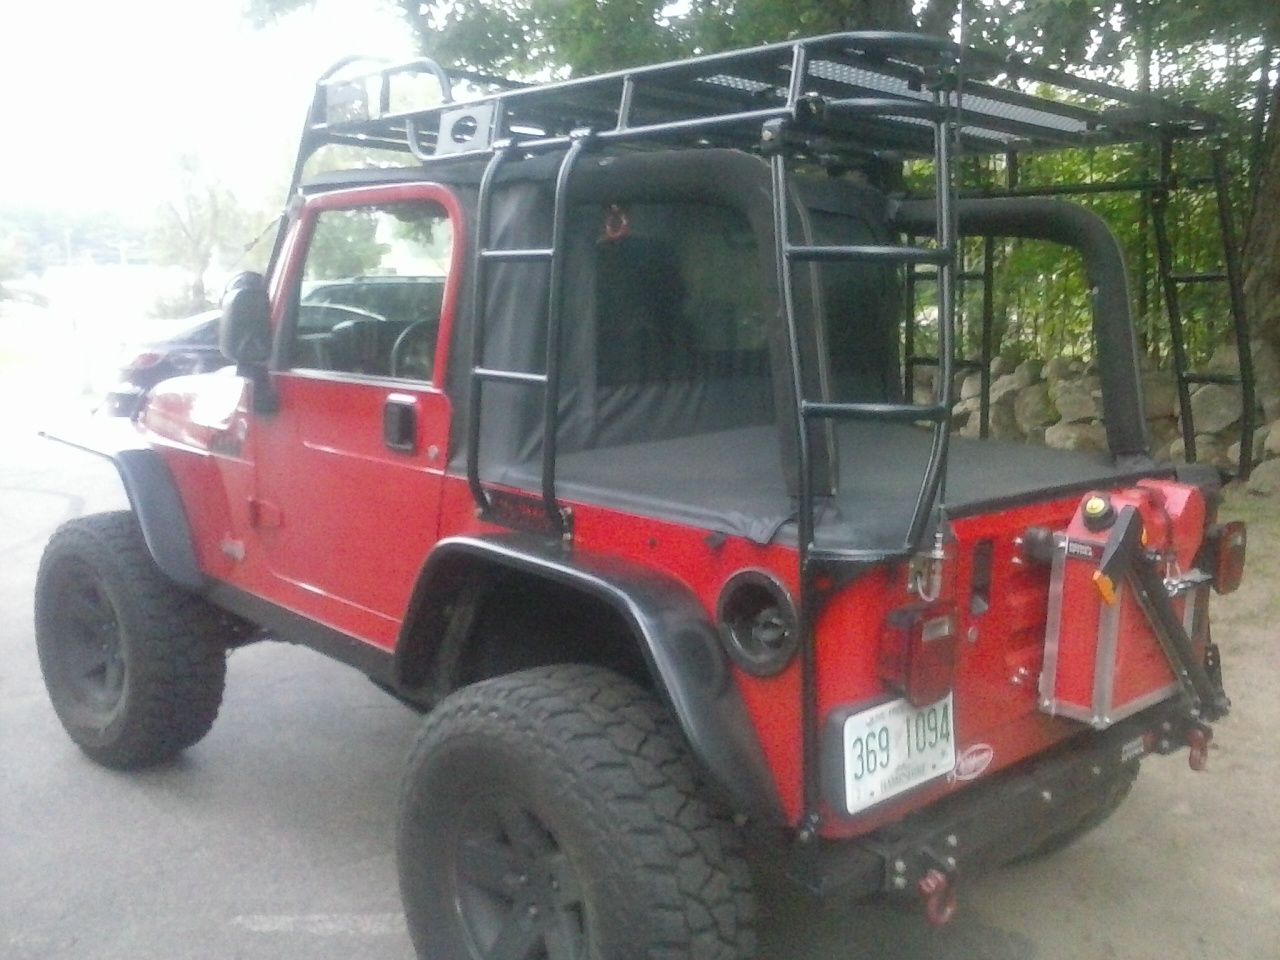 & Expedition Ready Jeep Wrangler unlimited JK Expedition Rack